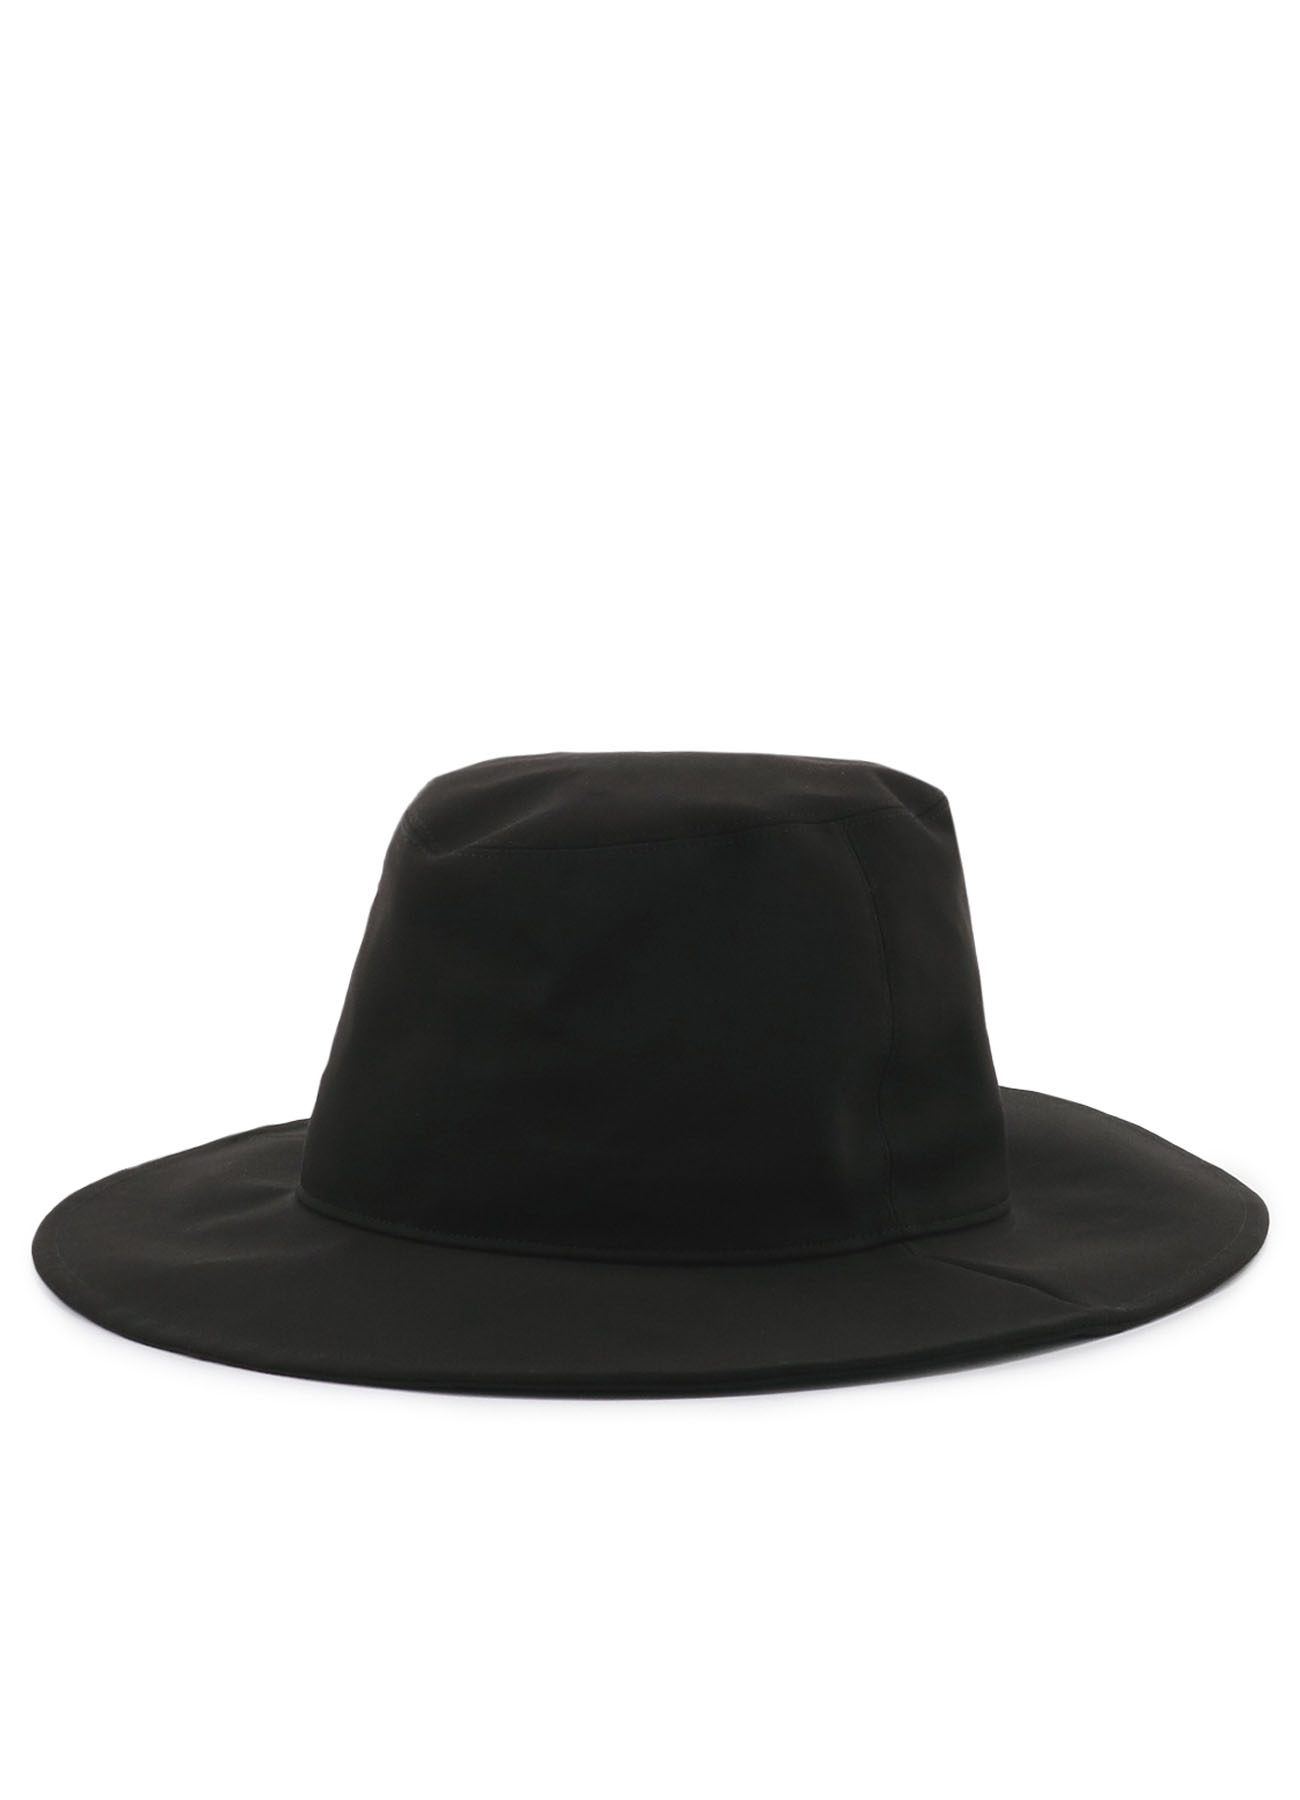 Pe/Rayon Gabardine Stretch Long Brim Hat